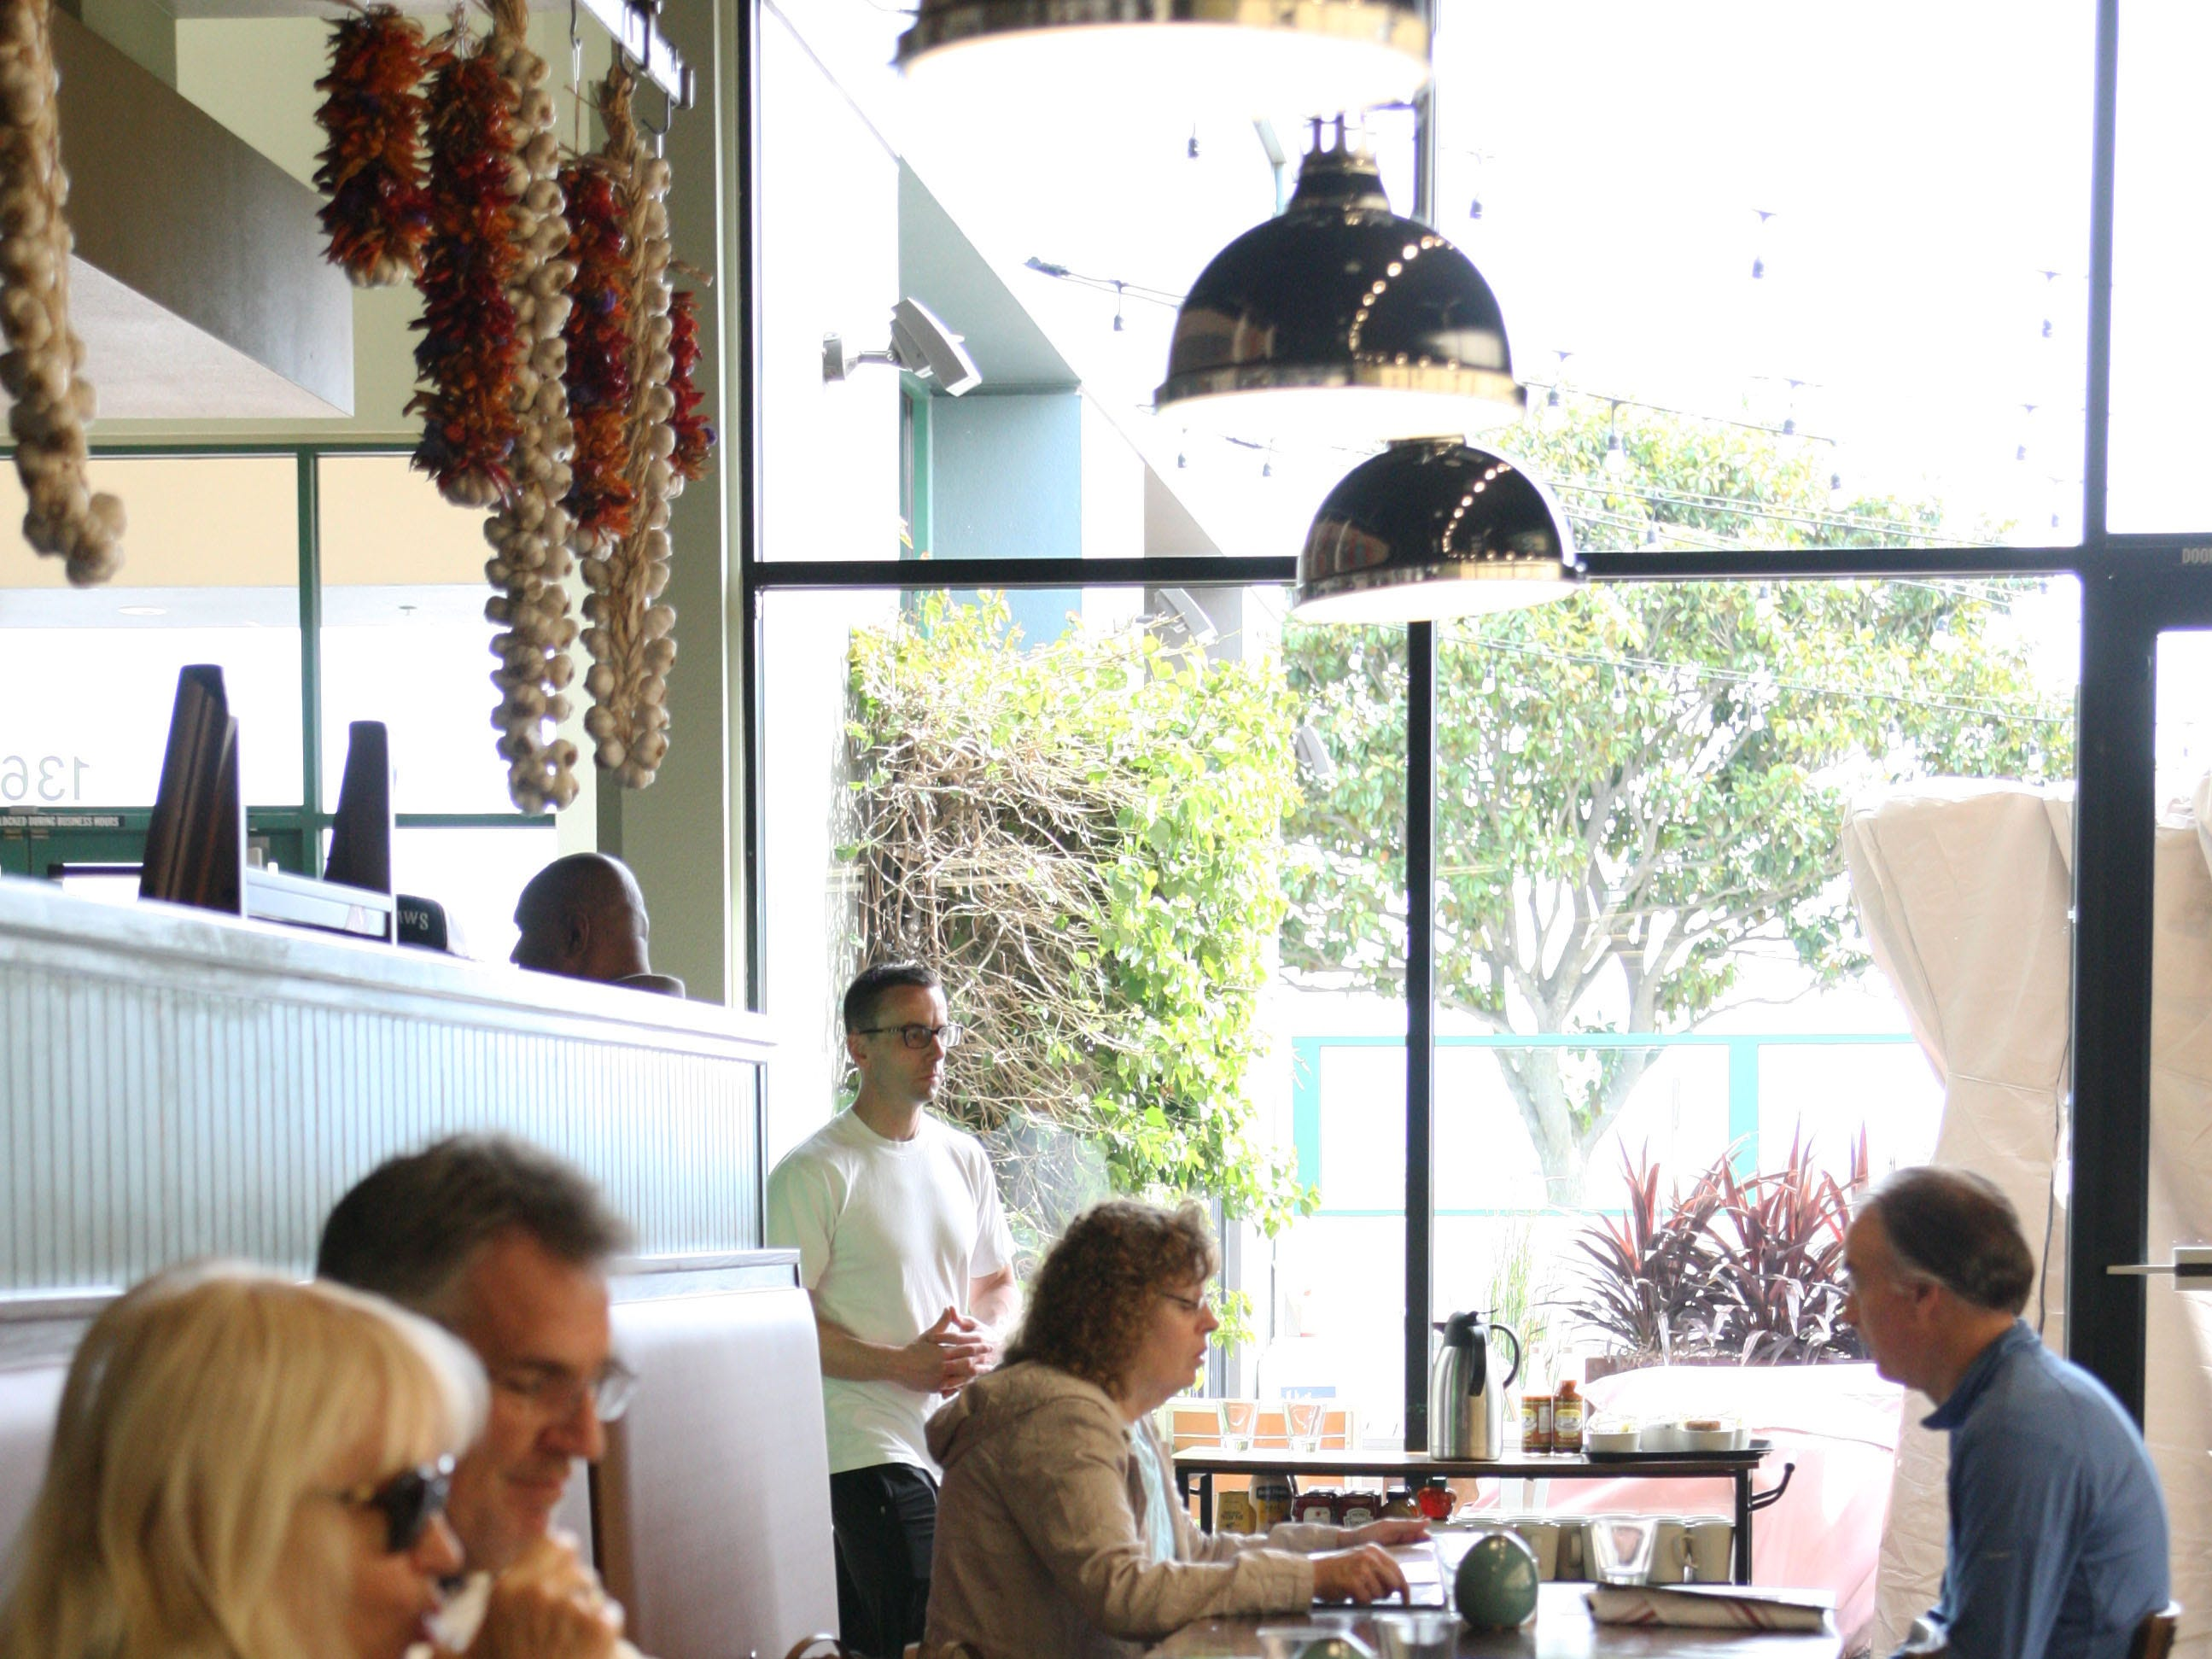 Patrons peruse the menu at Wild Thyme